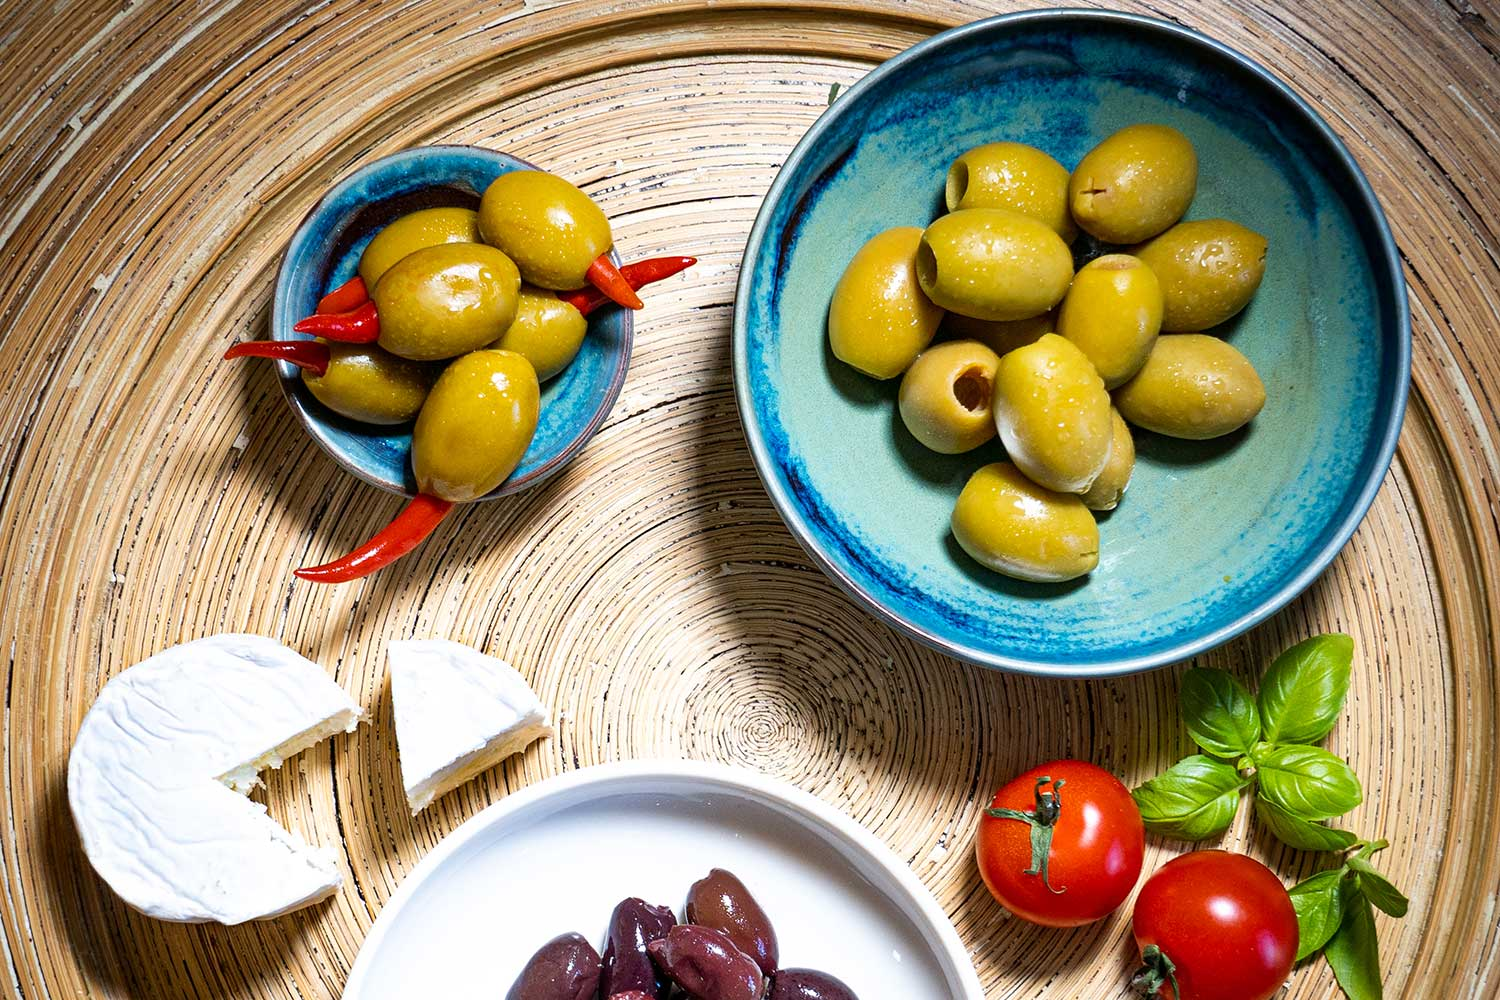 Introducing West Country Olives